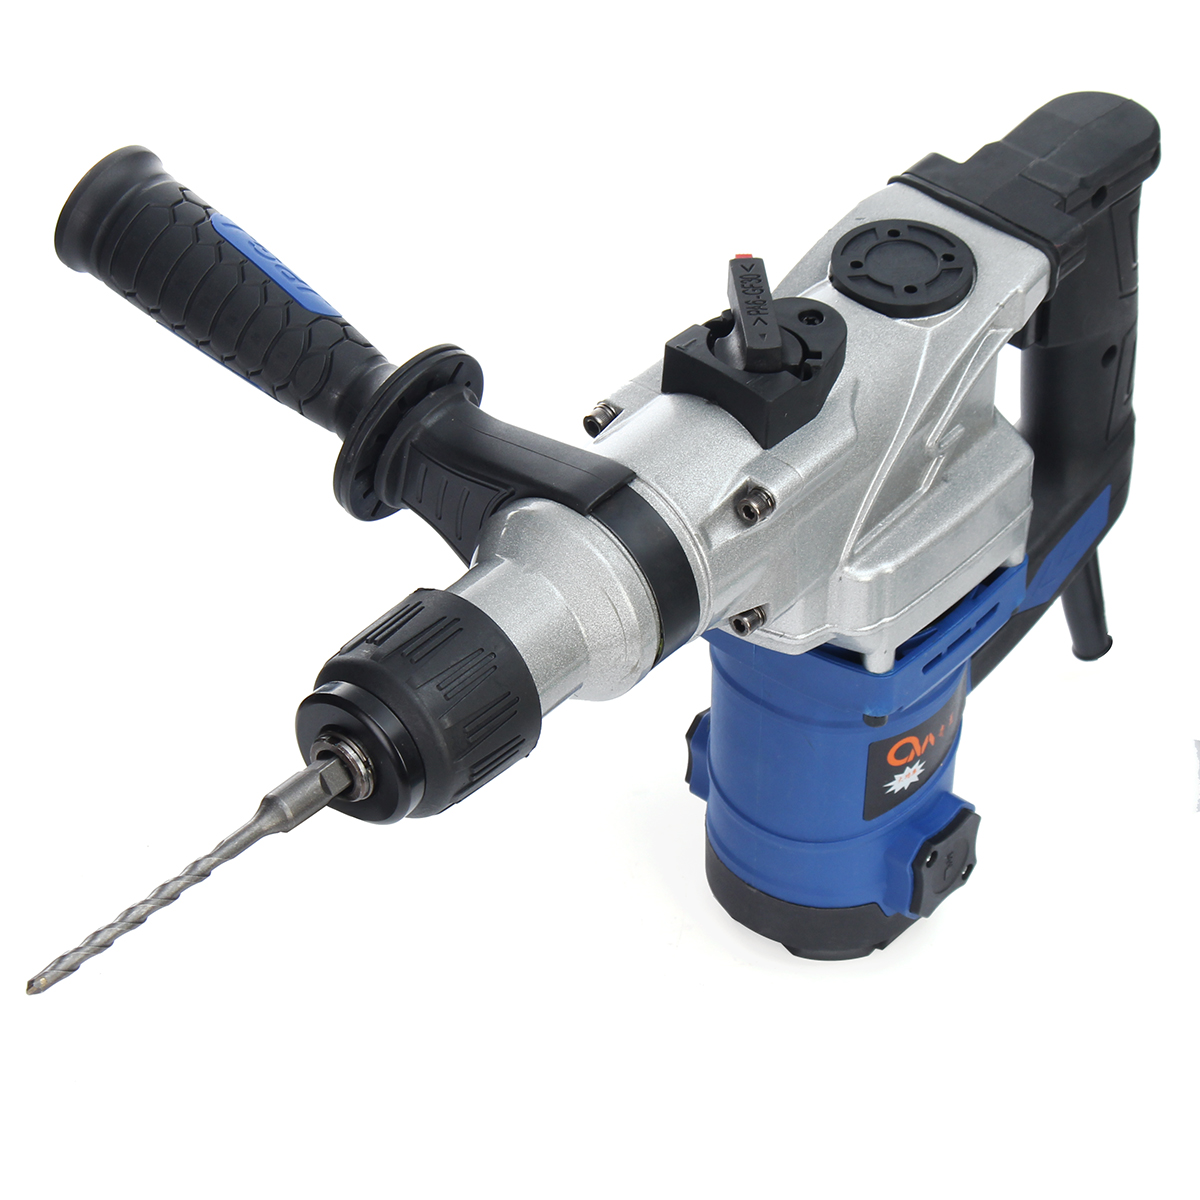 1850W Electric Hammer Drill Functional Household Professional Add 4 drill